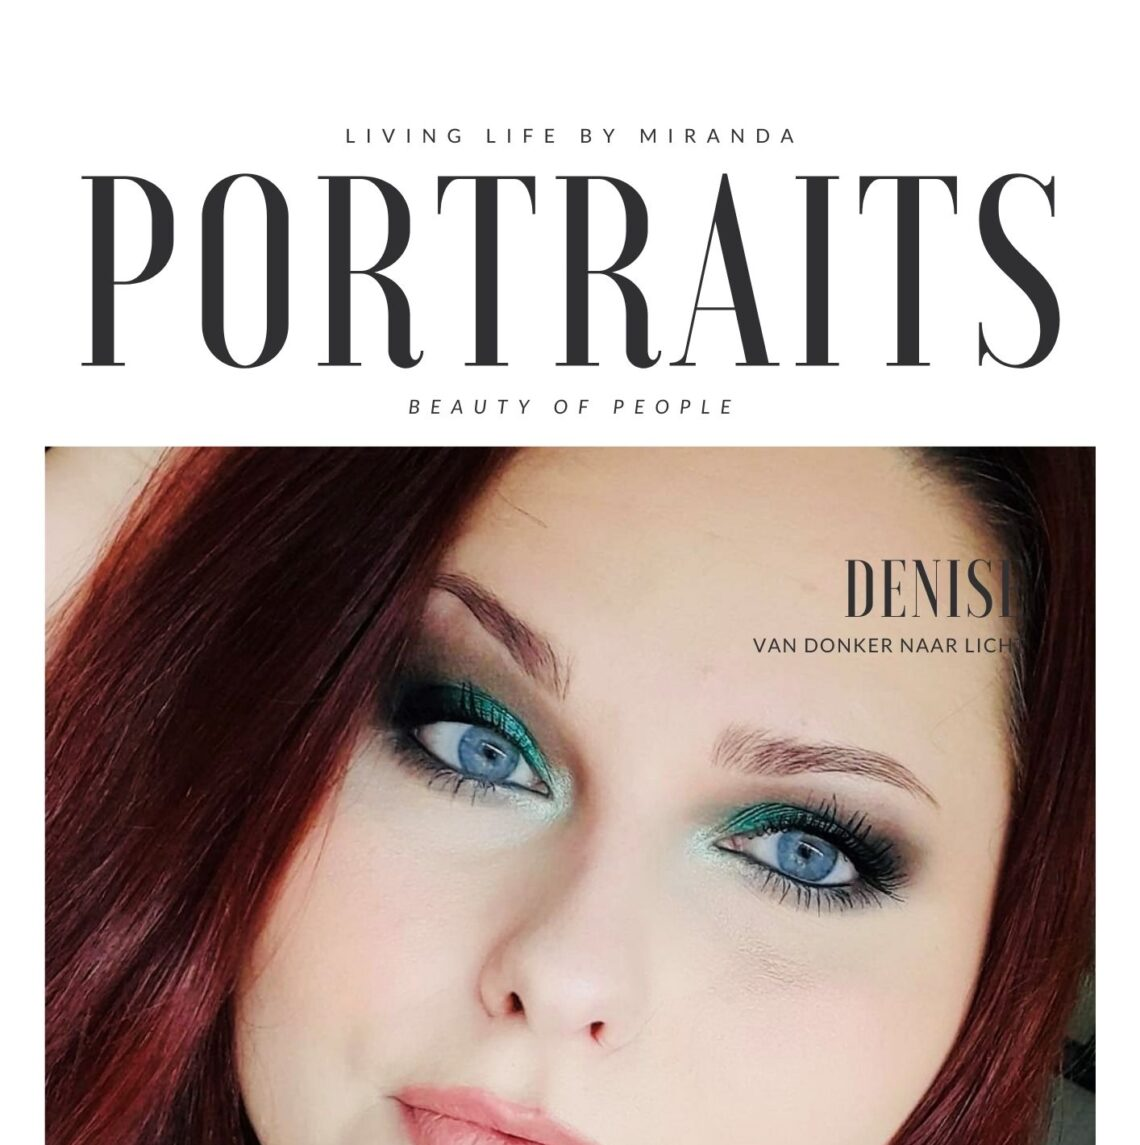 Voorpagina Portraits: Beauty of People DENISE